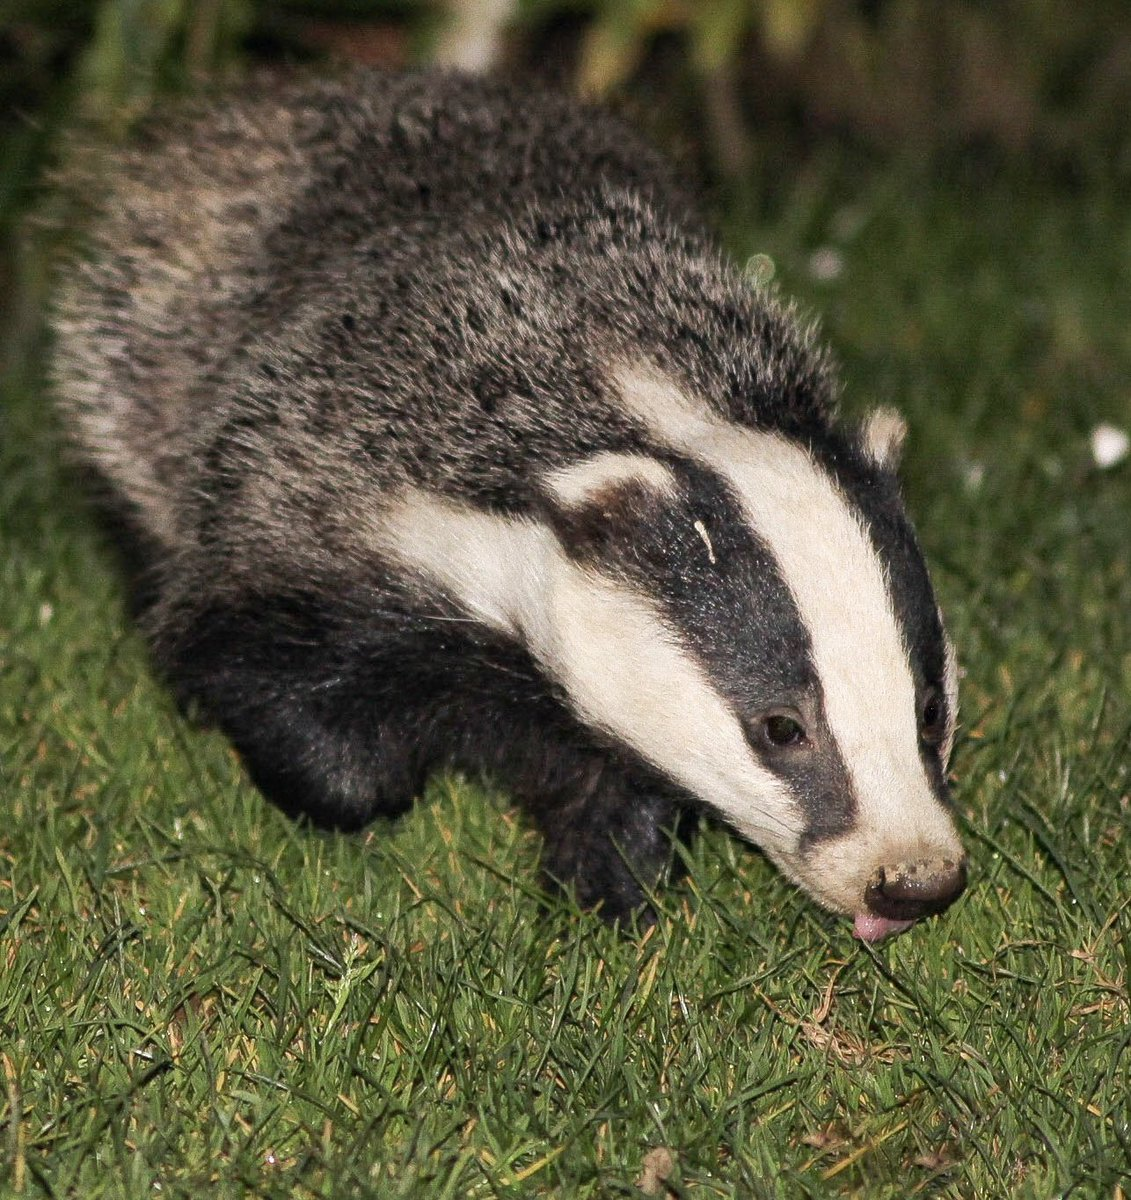 I may not be a dog or cat, but can I join in with #tongueouttuesday please? #badgers #NaturePhotography #naturelovers